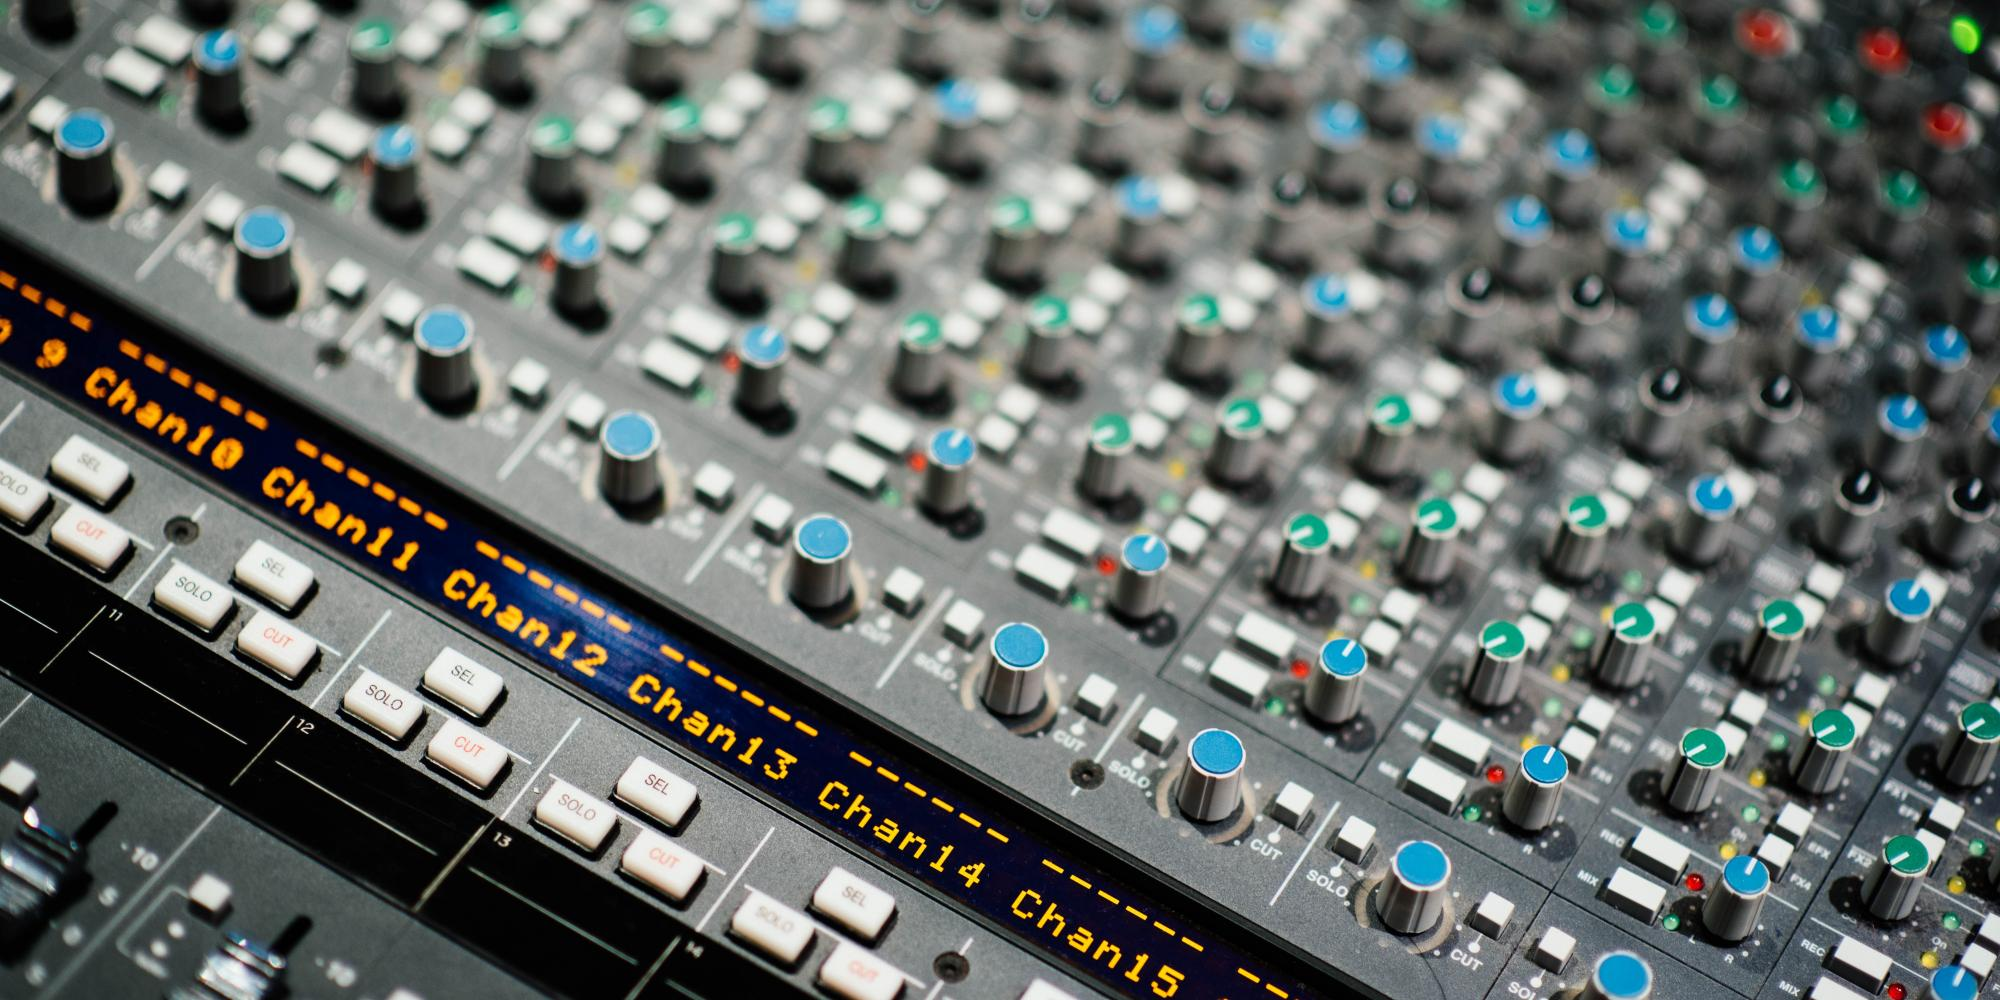 Closeup showing a mixing desk